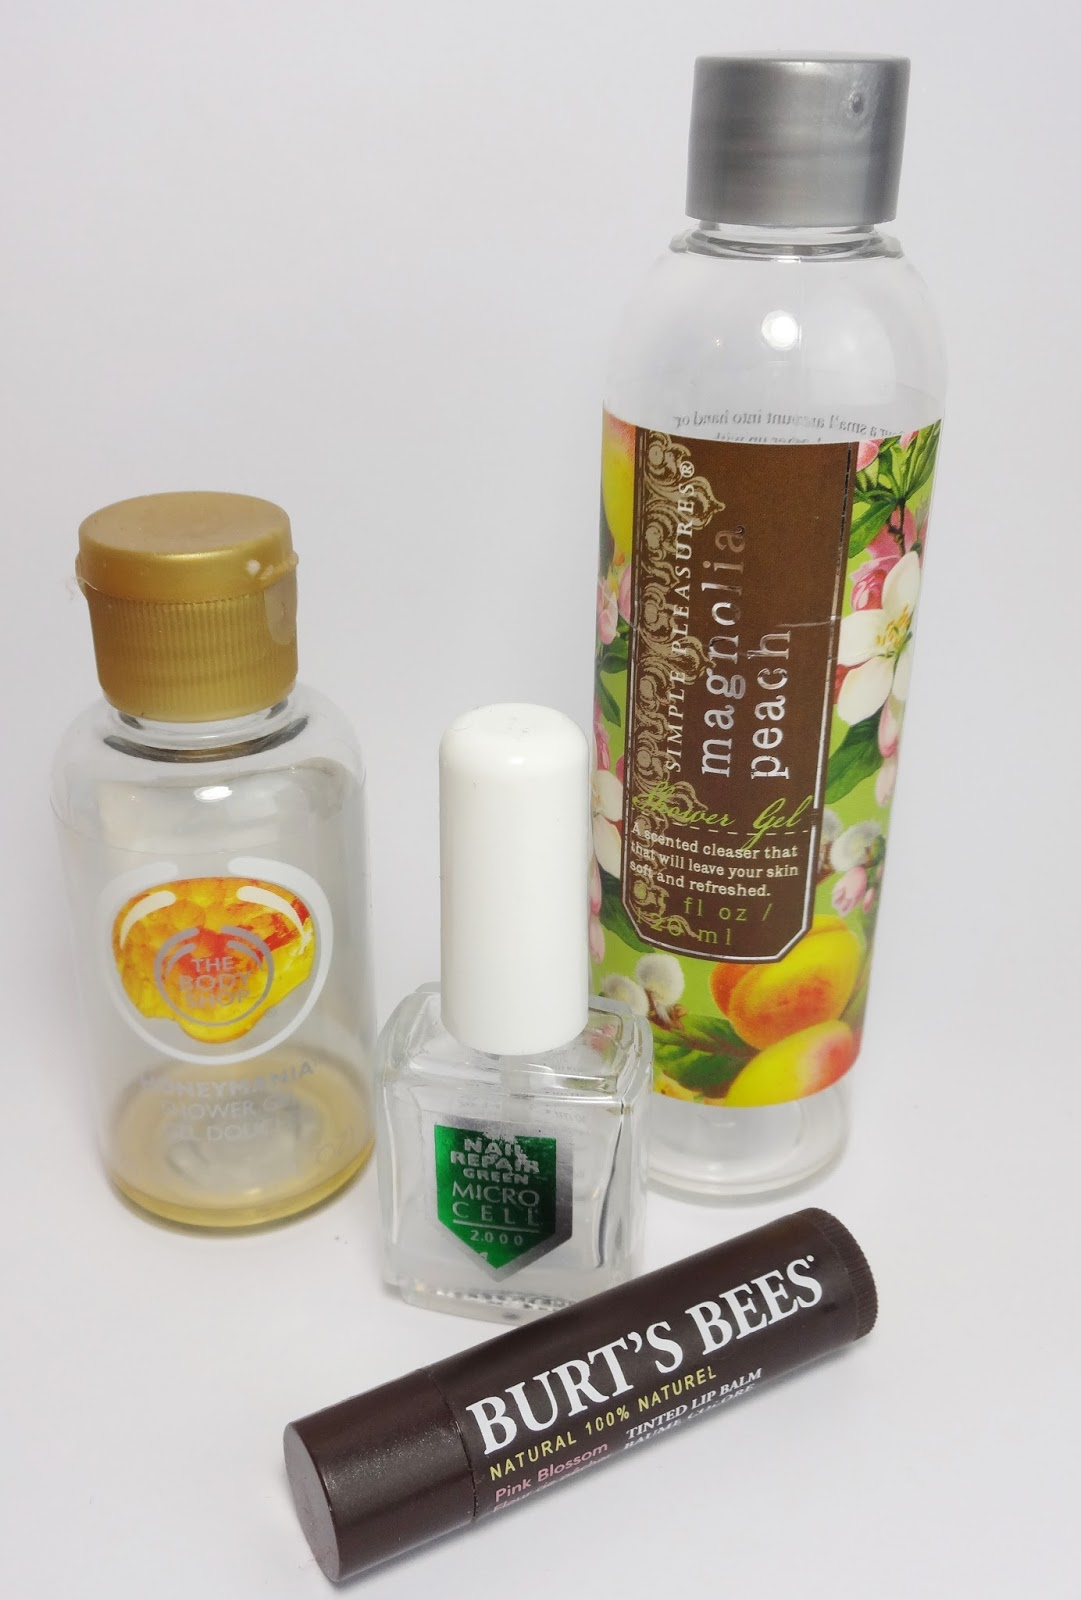 The Body Shop, Micro Cell 2000, Burt's Bees